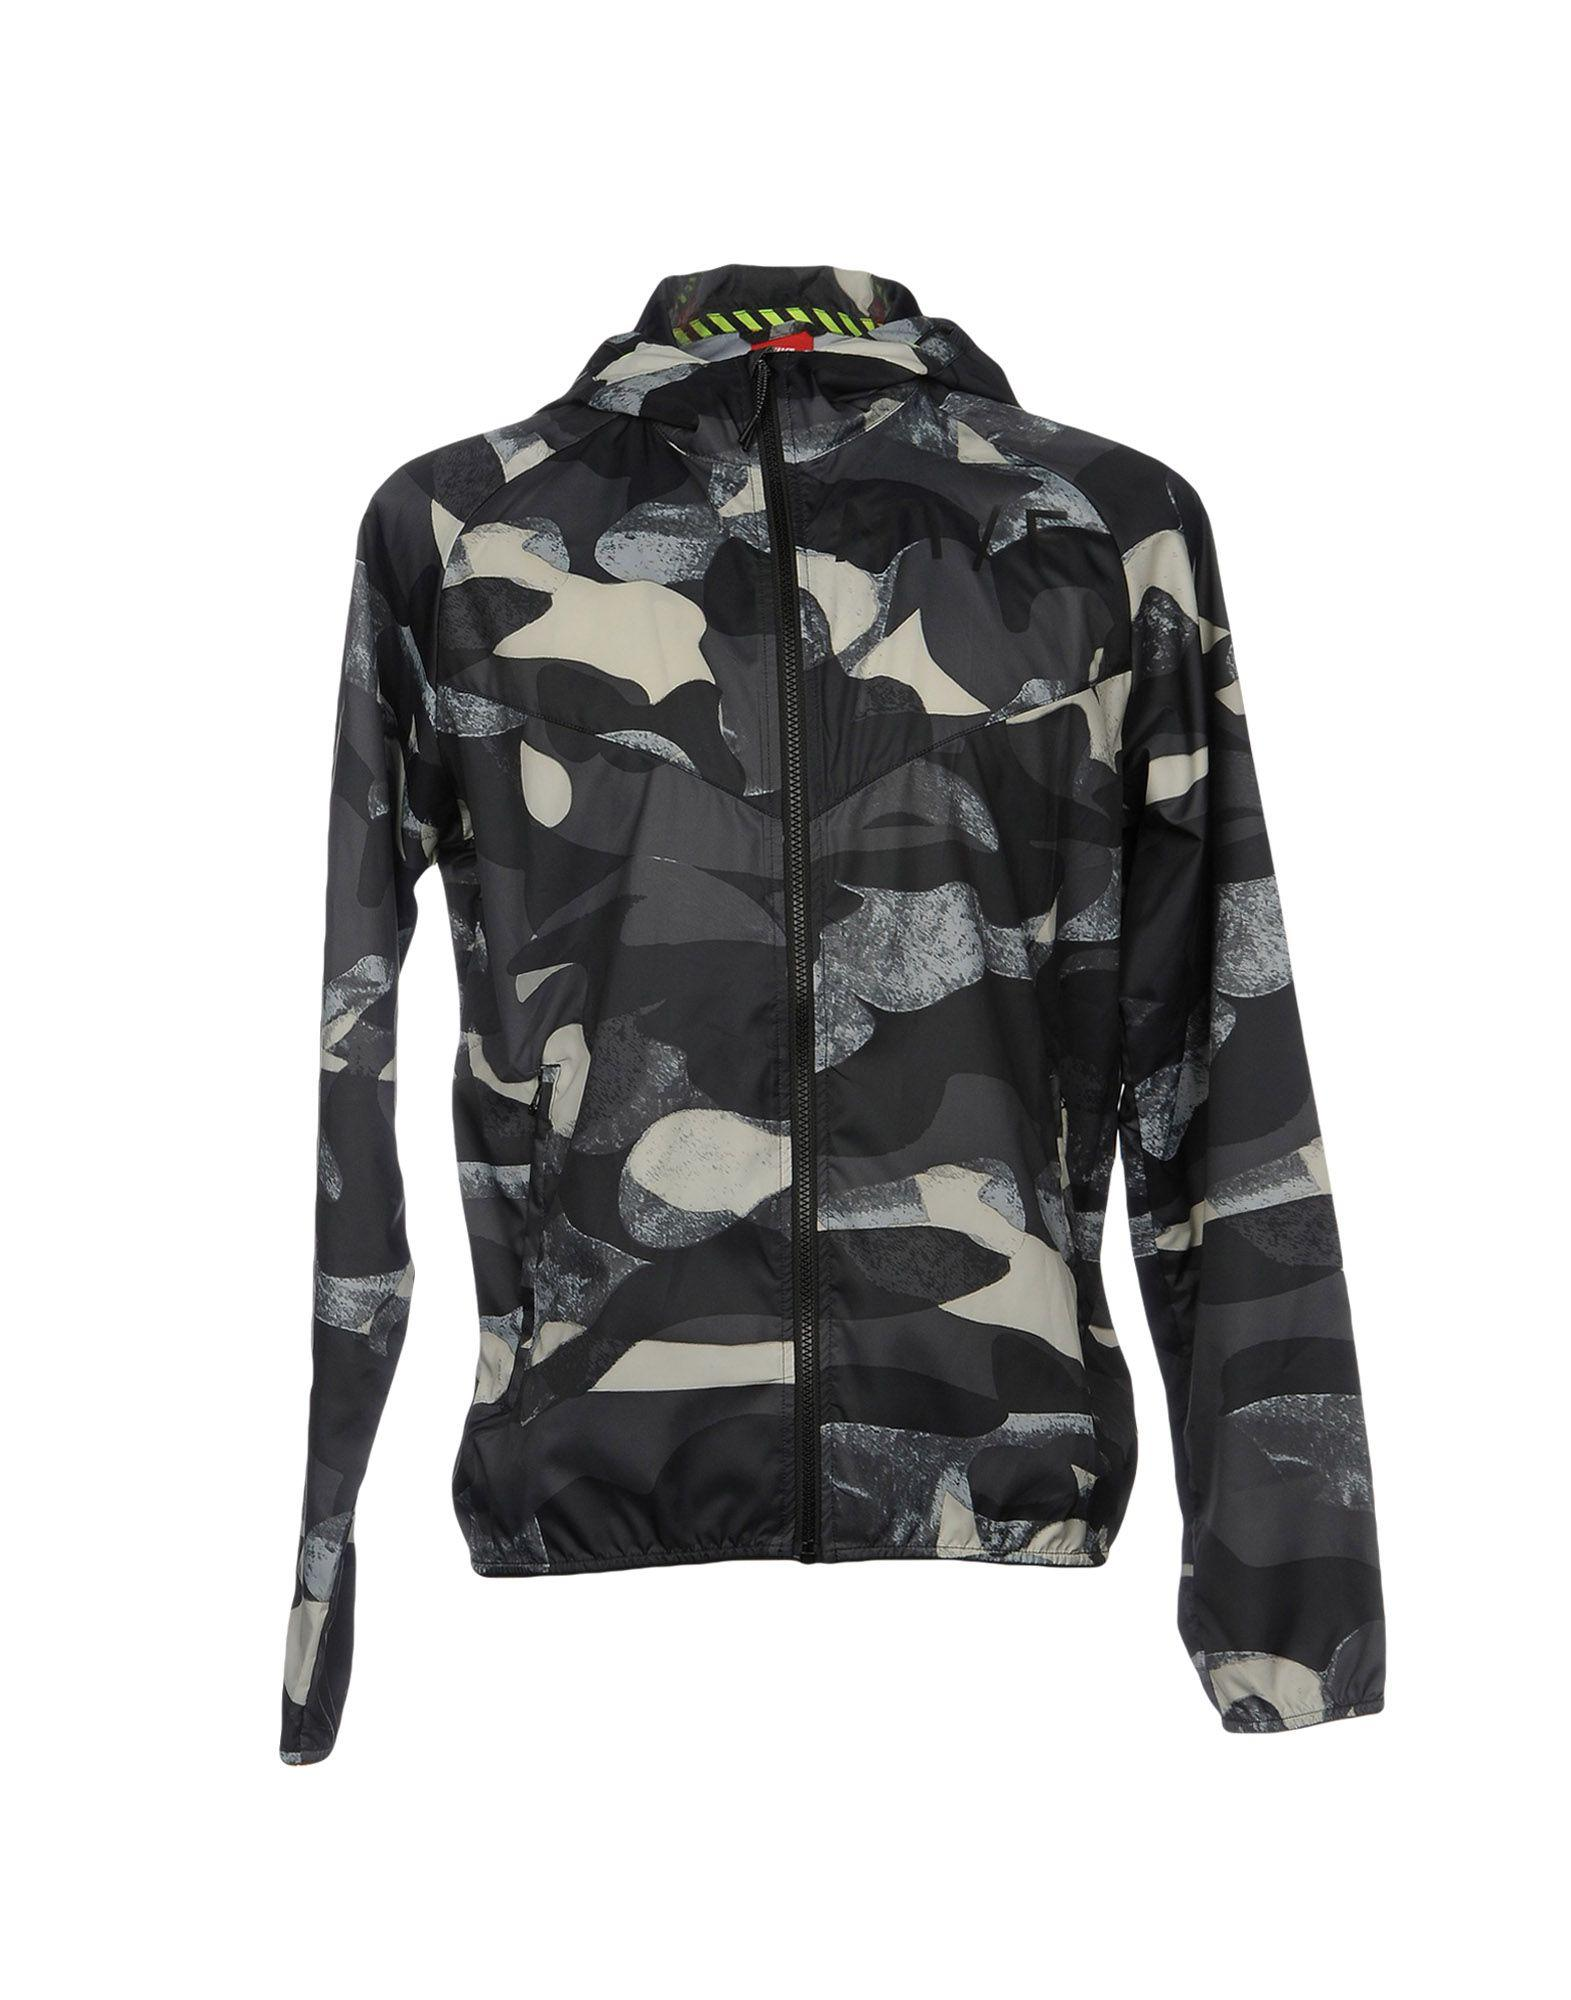 9cede6805 Lyst - Nike Jacket in Gray for Men